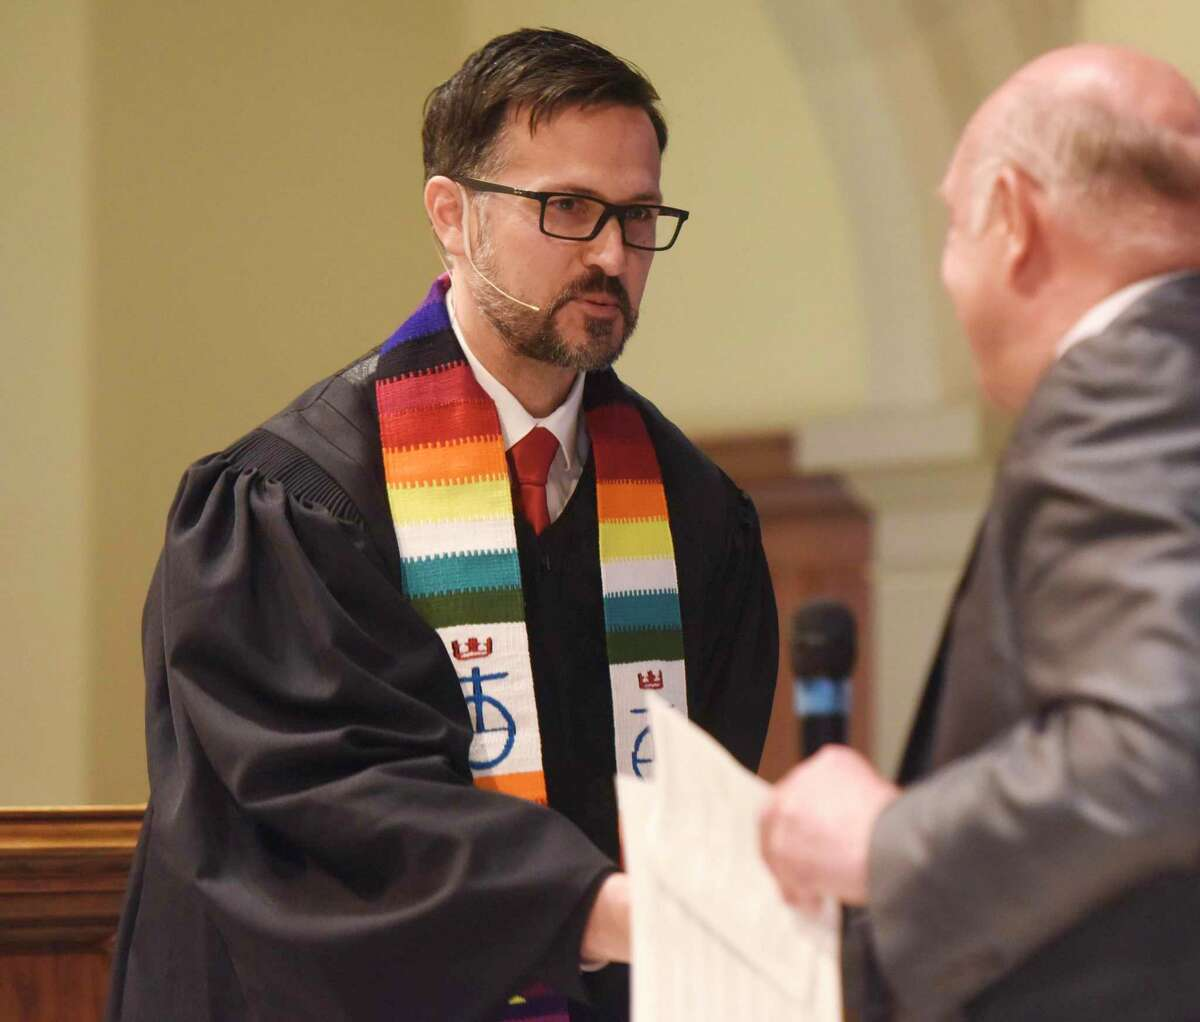 The Rev. Patrick Collins, Associate Pastor for Children, Youth and Families, is installed as a minister at First Congregational Church of Greenwich in April of 2017. It was announced Dec. 1 that the Rev. Patrick Collins, who has served as Associate Pastor since September 2016, will be the new Senior Pastor at FCCOG.